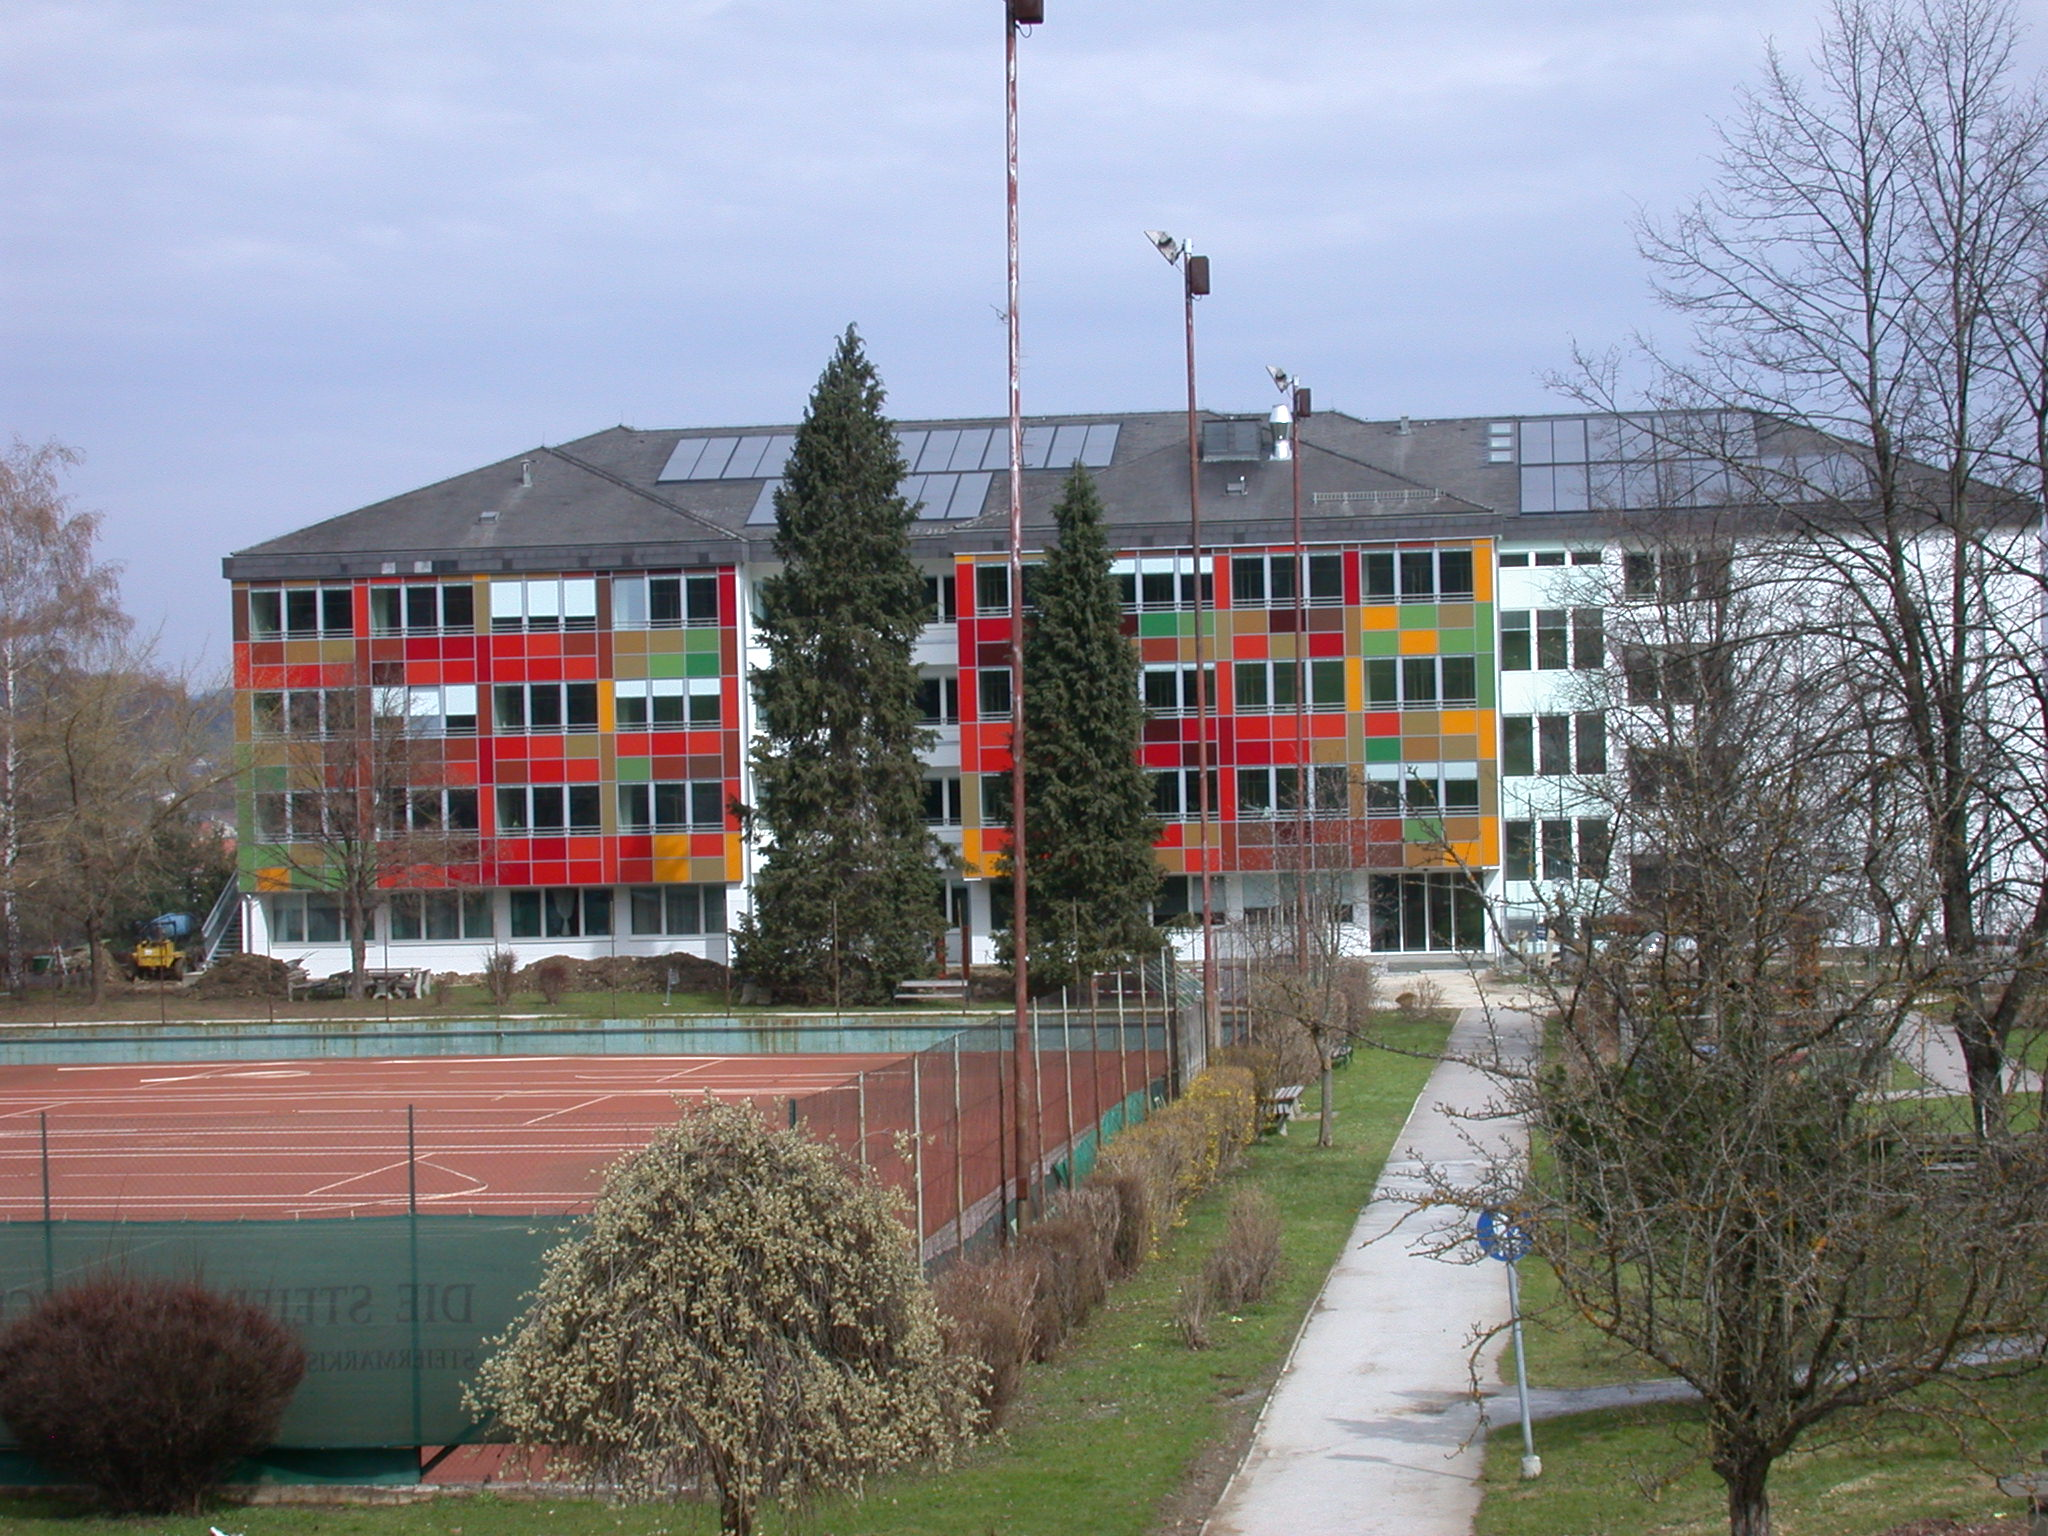 Hostel for pensioners with solar panels a showcase in the Weiz-Gleisdorf